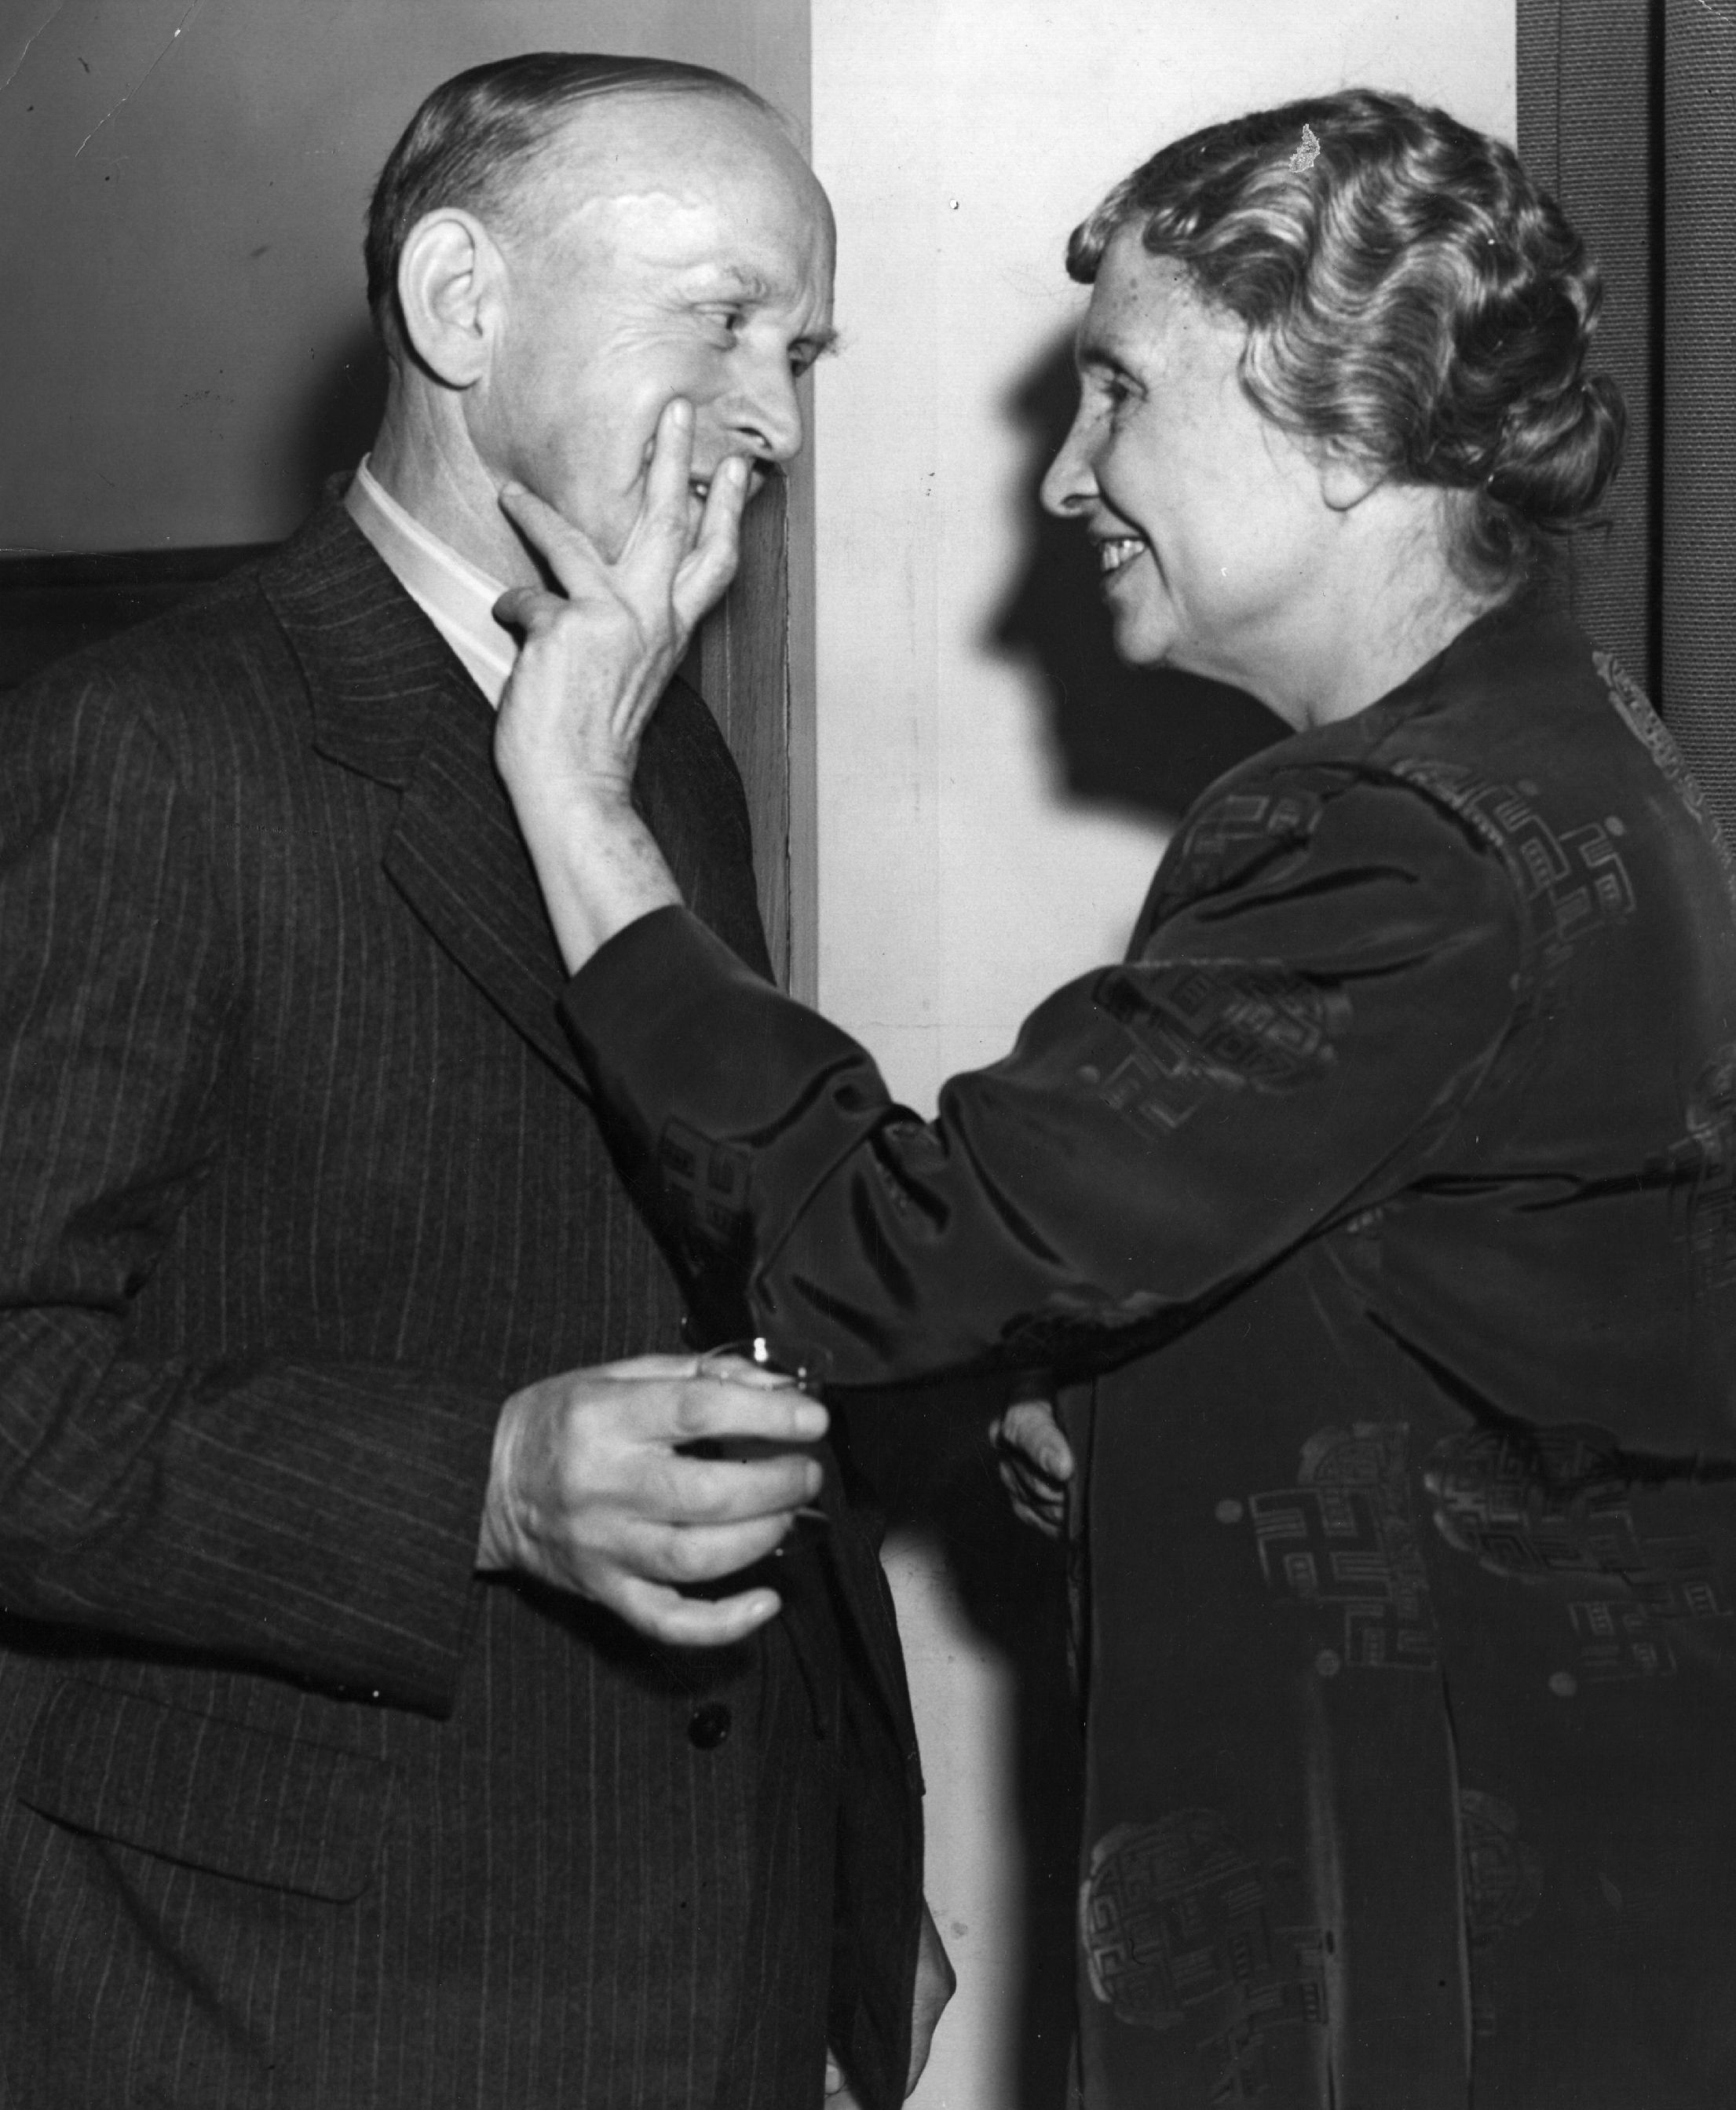 The Above Image Is Of Helen Keller Meeting Charlie Chaplin